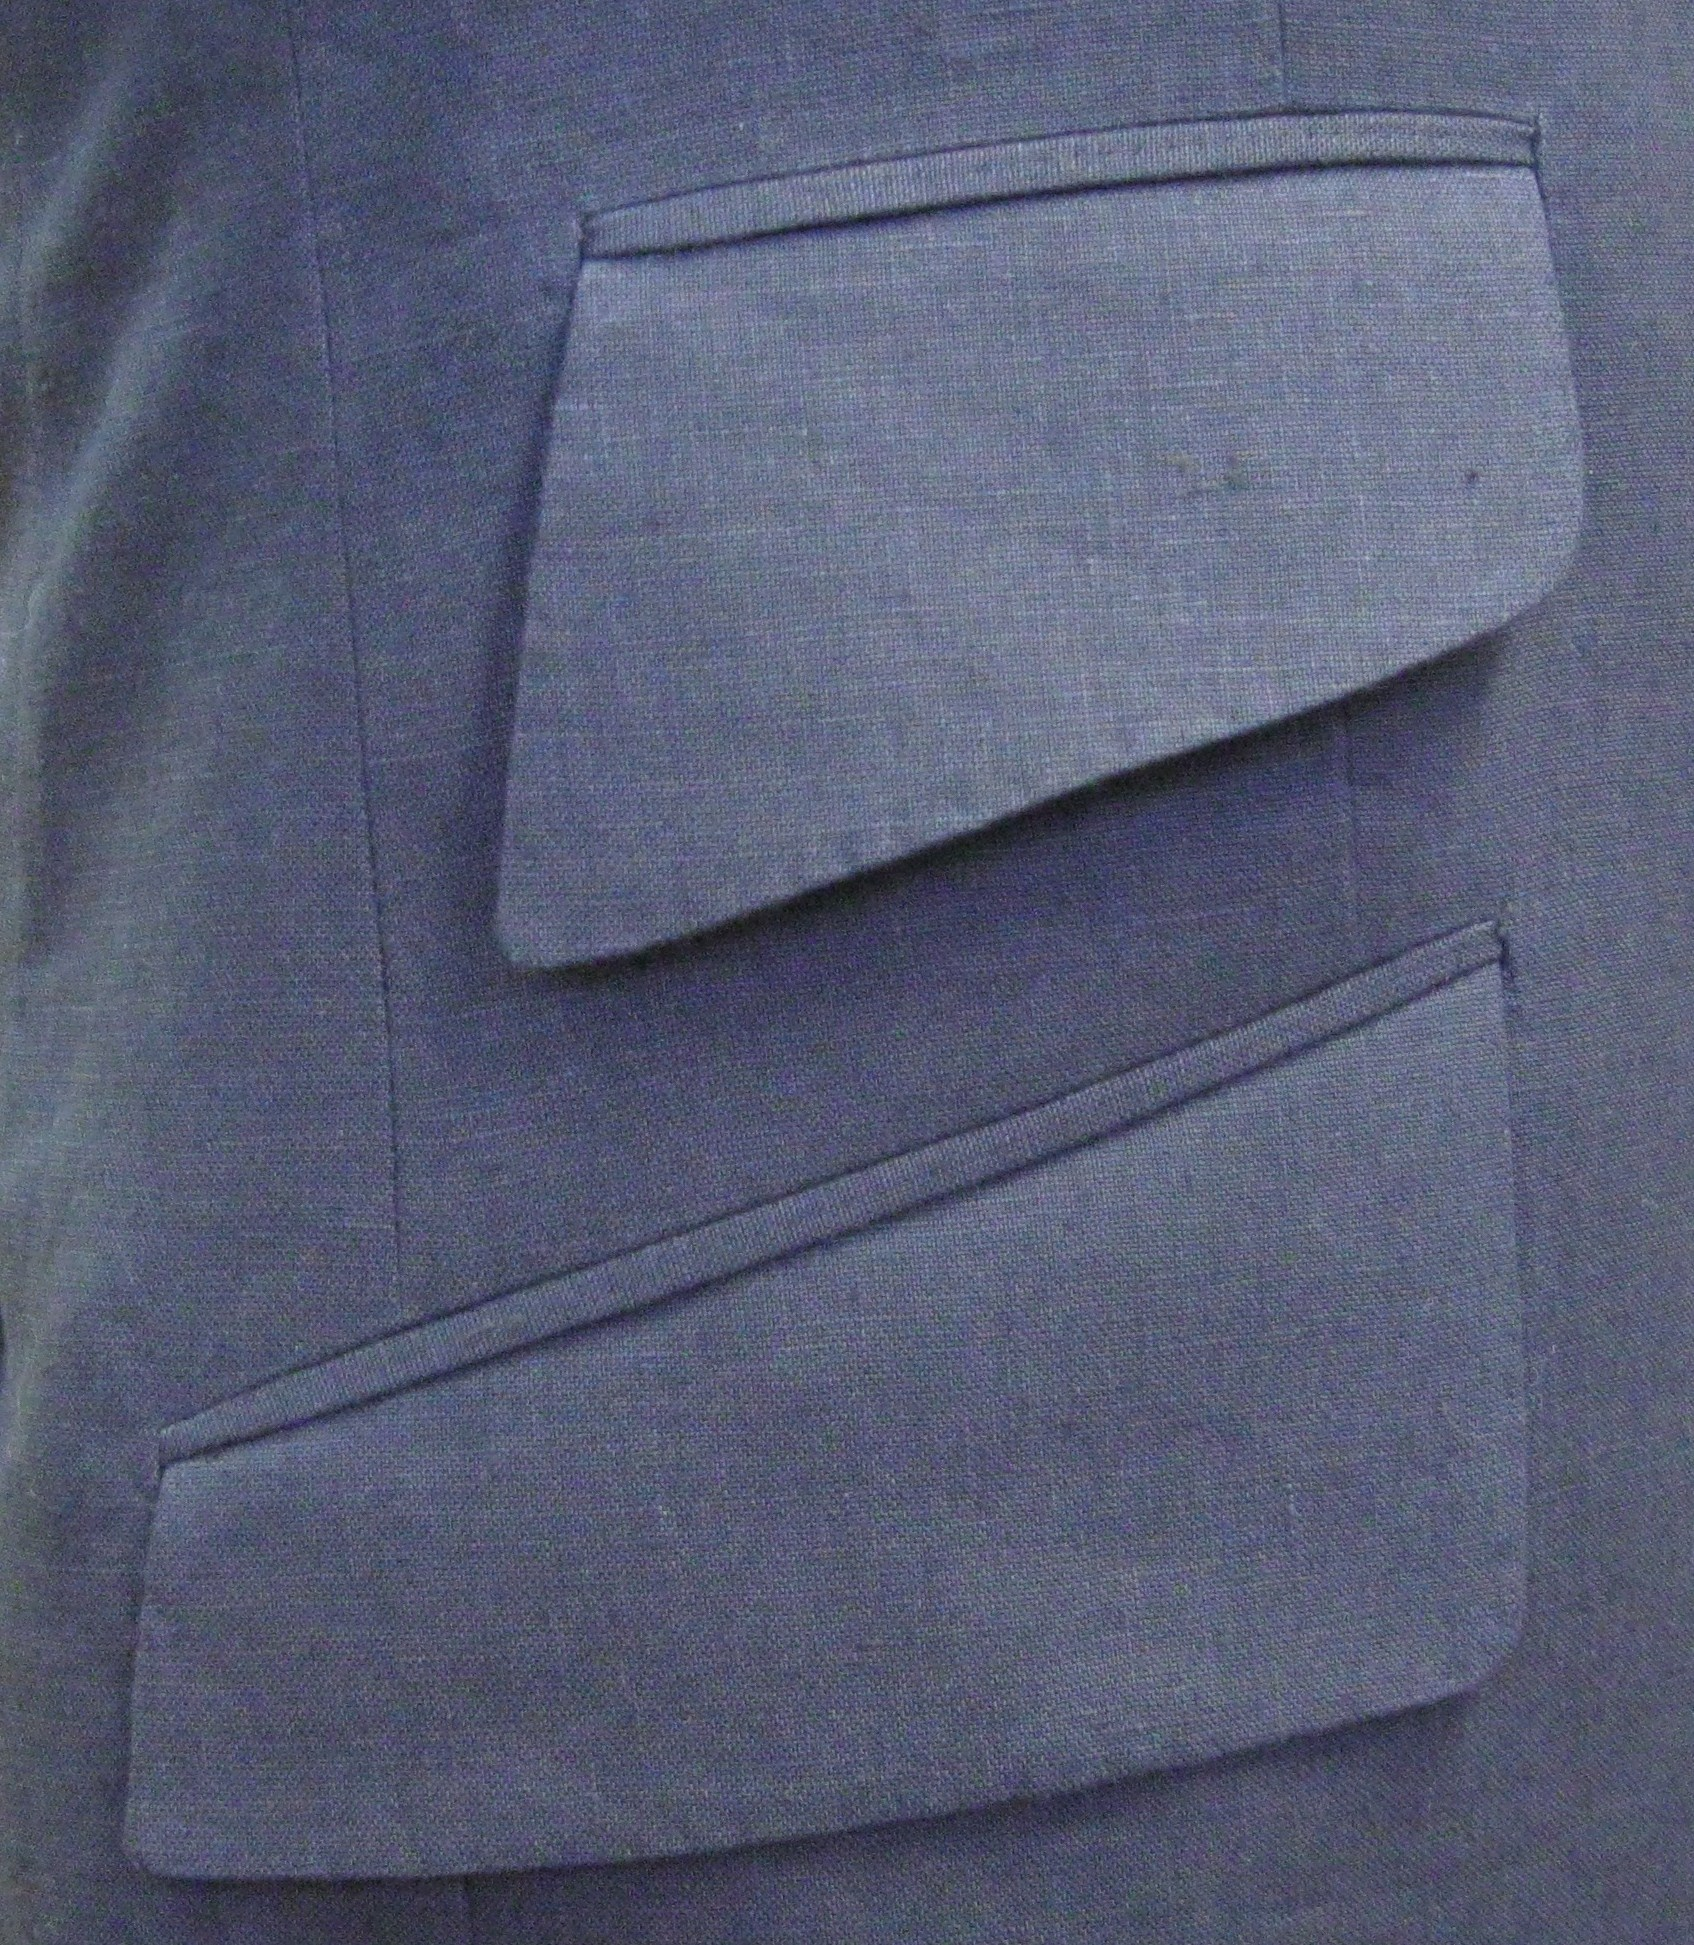 upside down pockets (2)